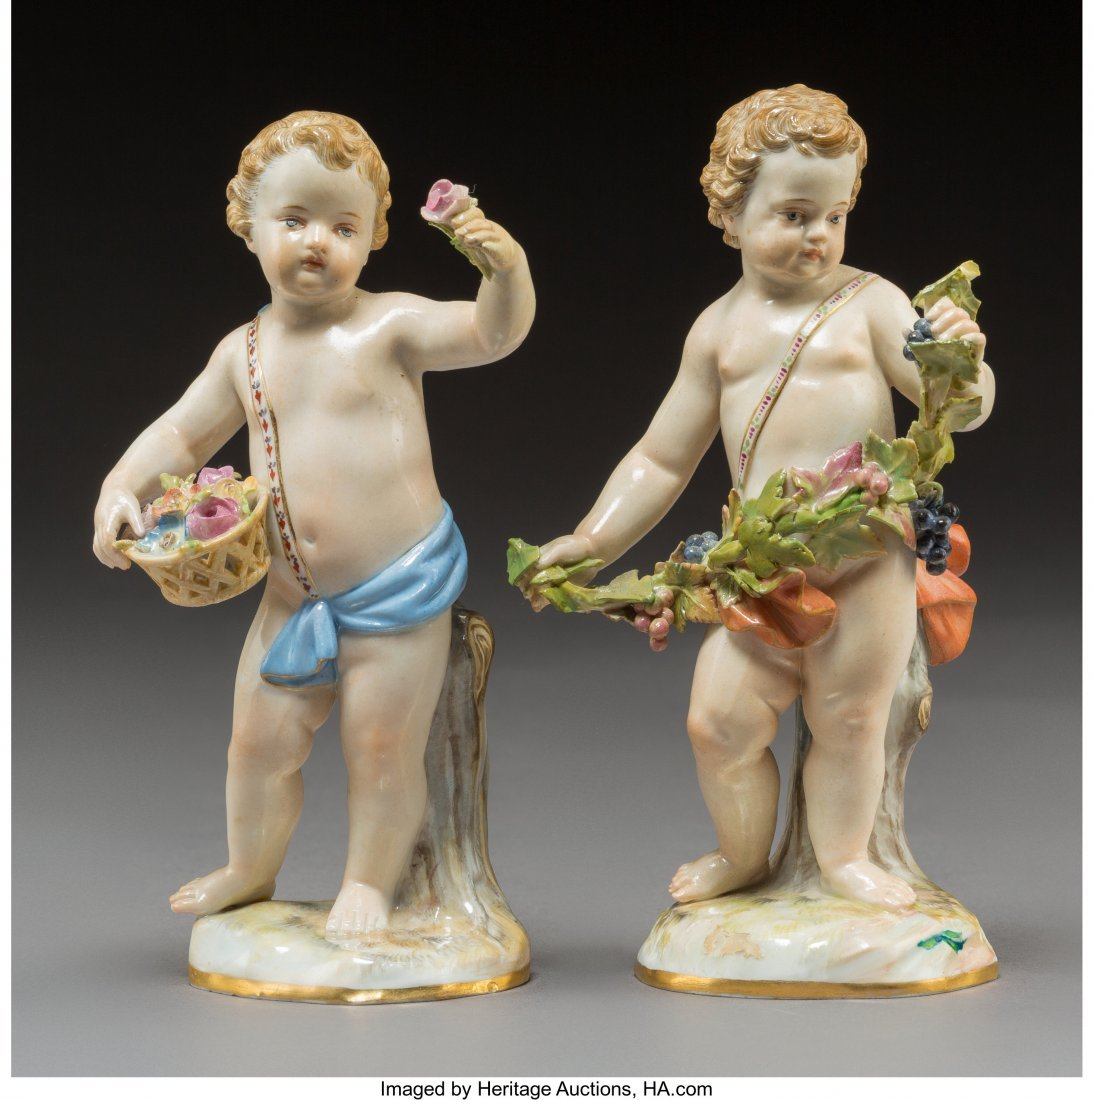 64200: A Pair of Meissen Polychromed and Gilt Porcelain